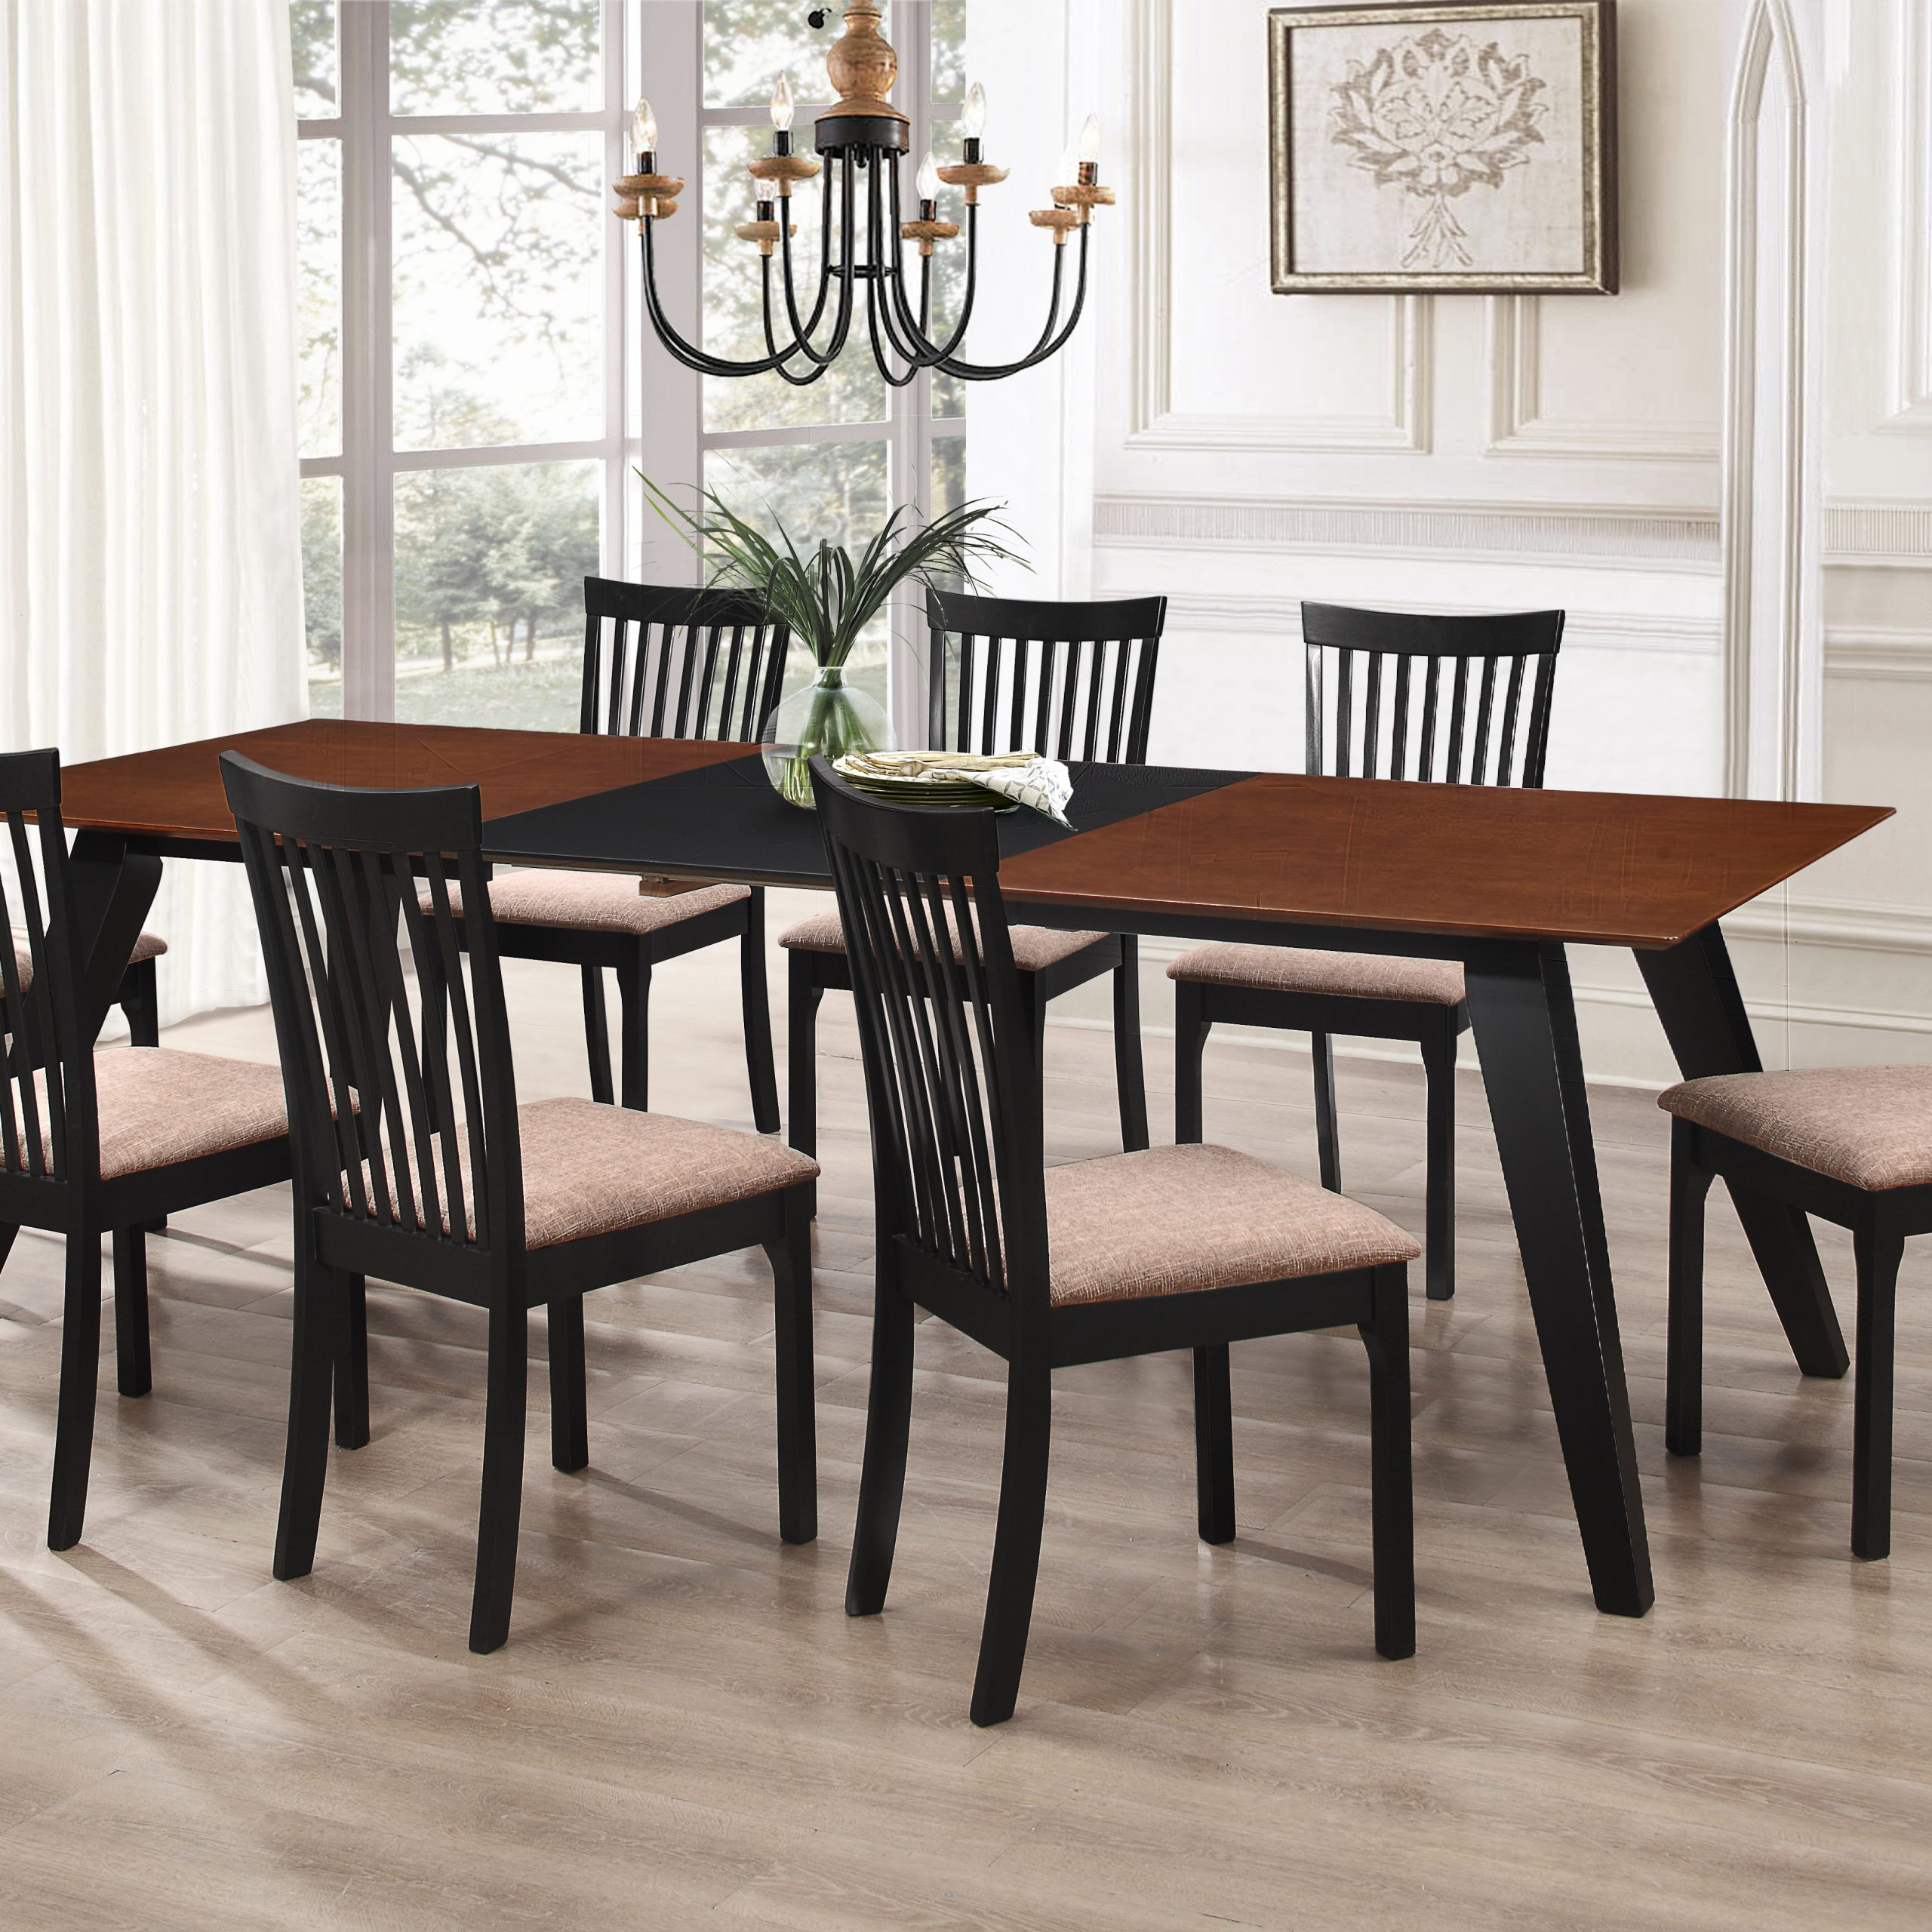 Most Popular Verona 9 Piece Formal Dining Room Set, Walnut Black Wood Pertaining To 8 Seater Wood Contemporary Dining Tables With Extension Leaf (View 10 of 25)